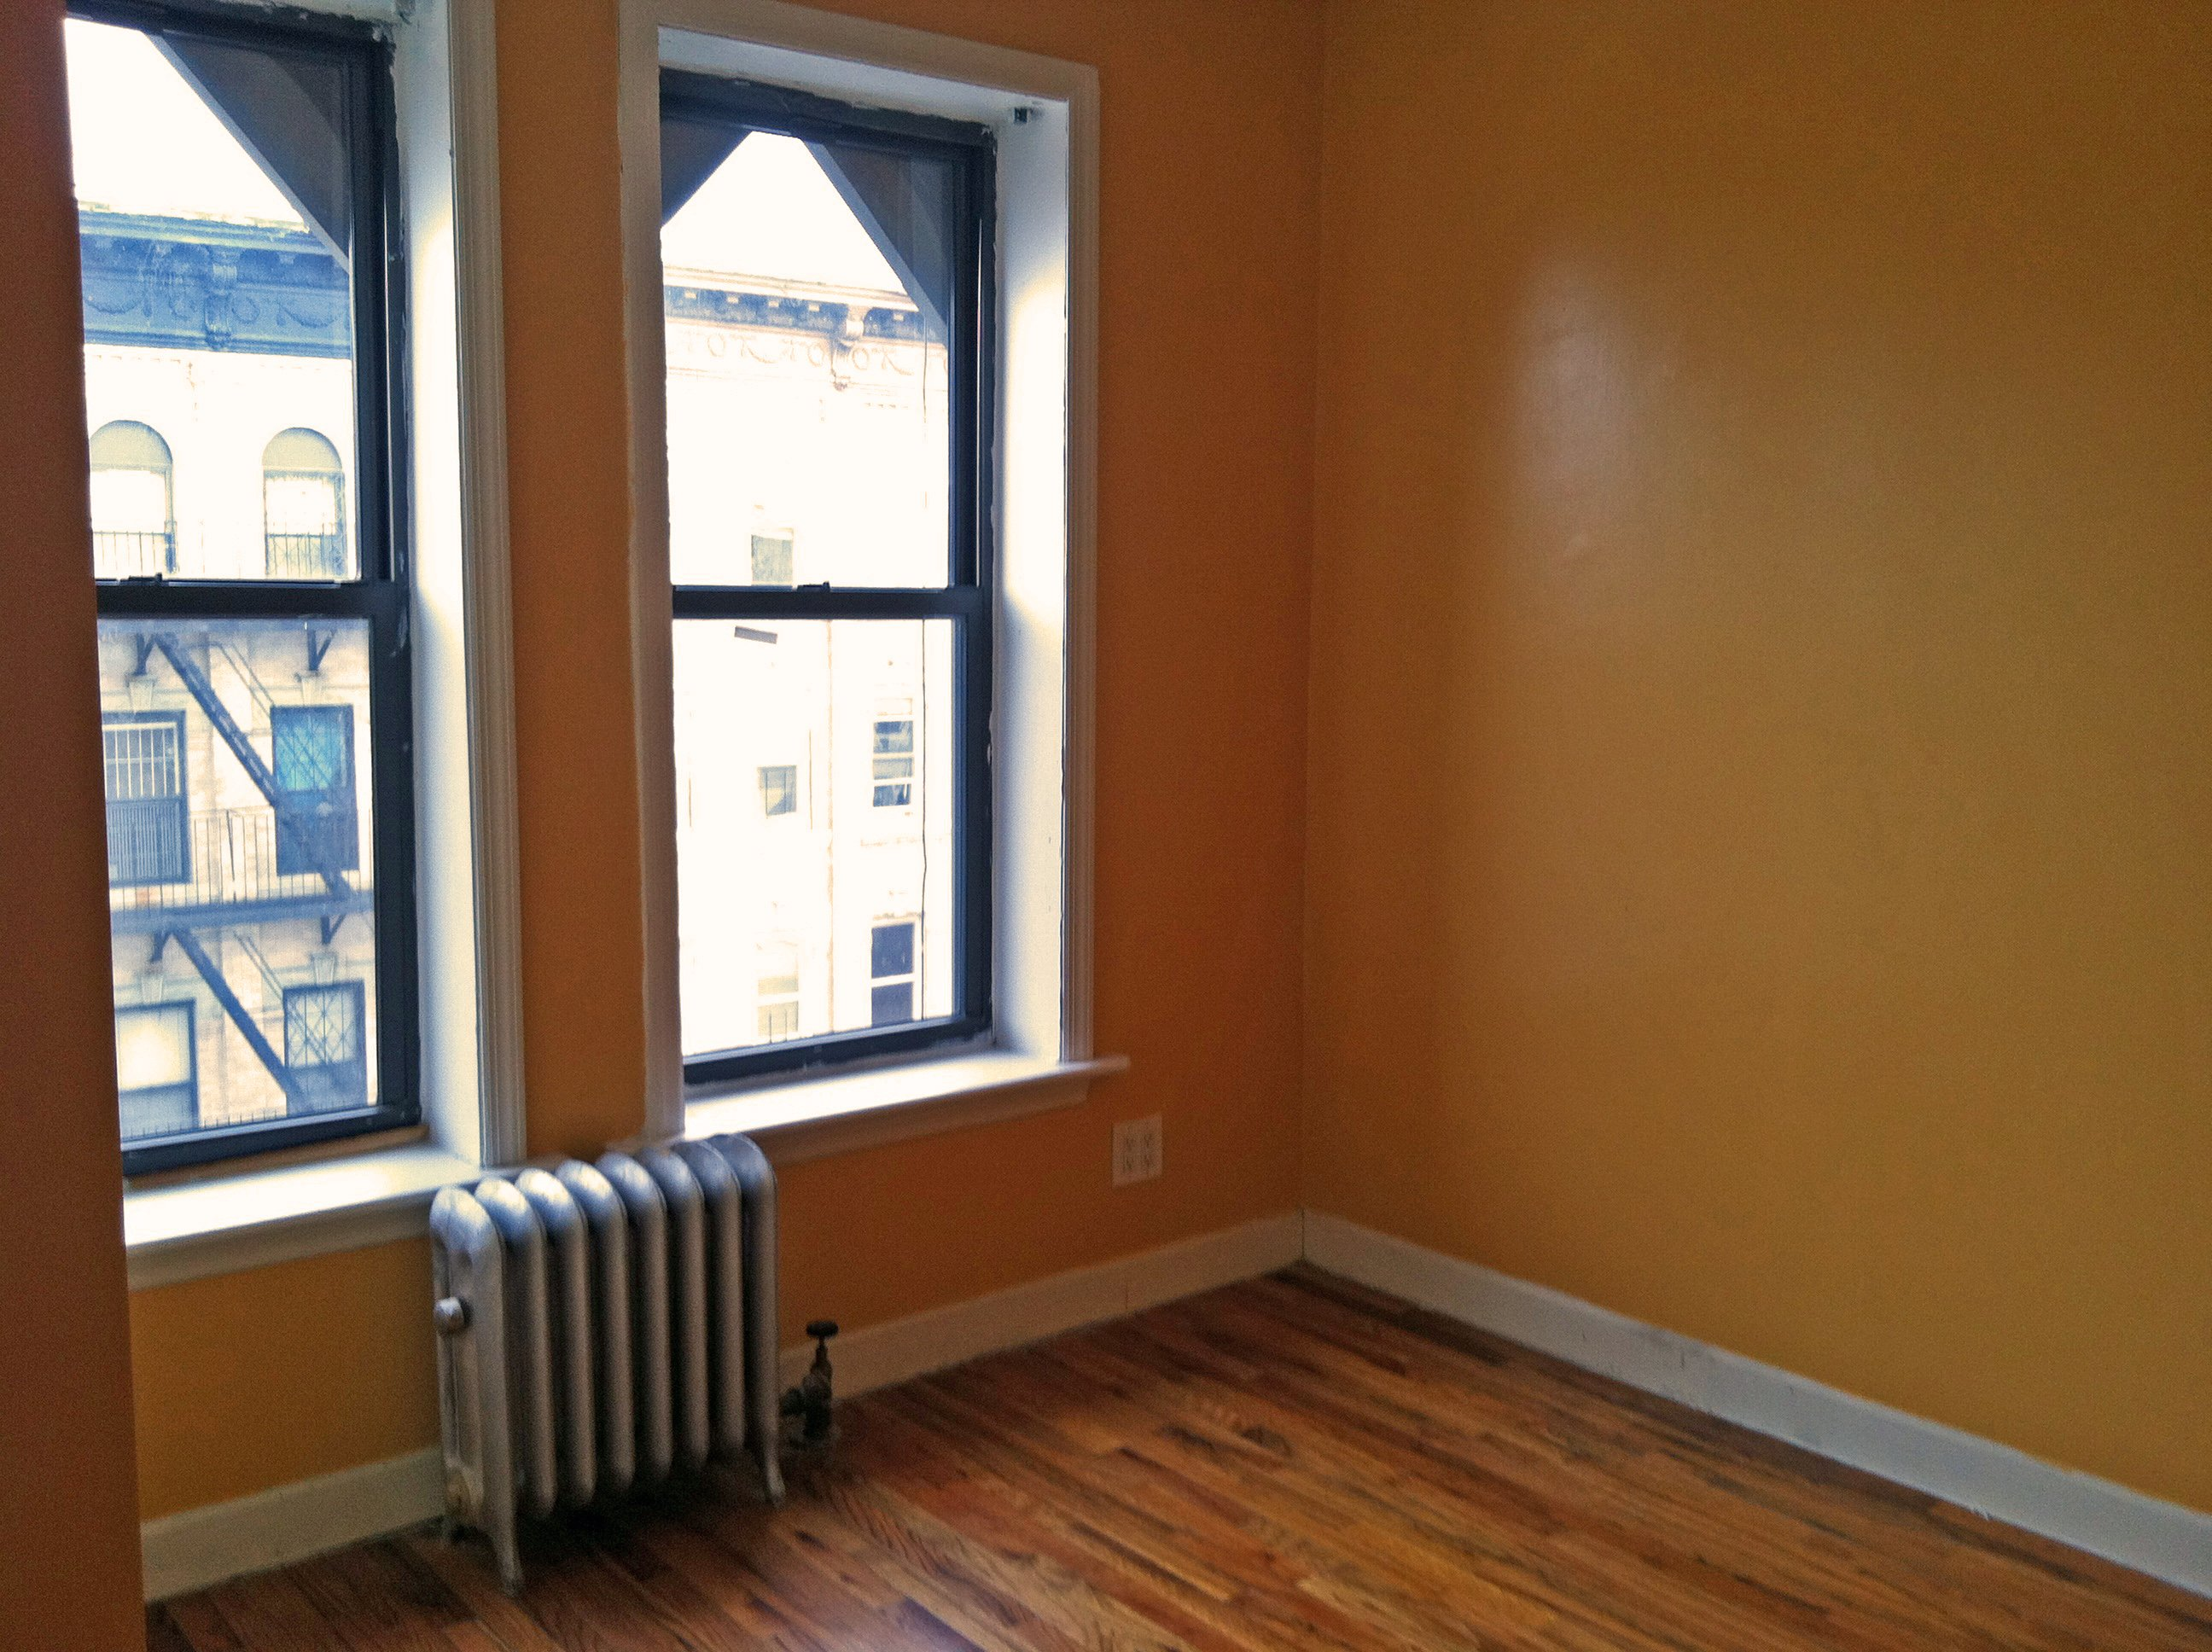 Crown heights 2 bedroom apartment for rent brooklyn crg3120 for 2 bedroom apartments for rent